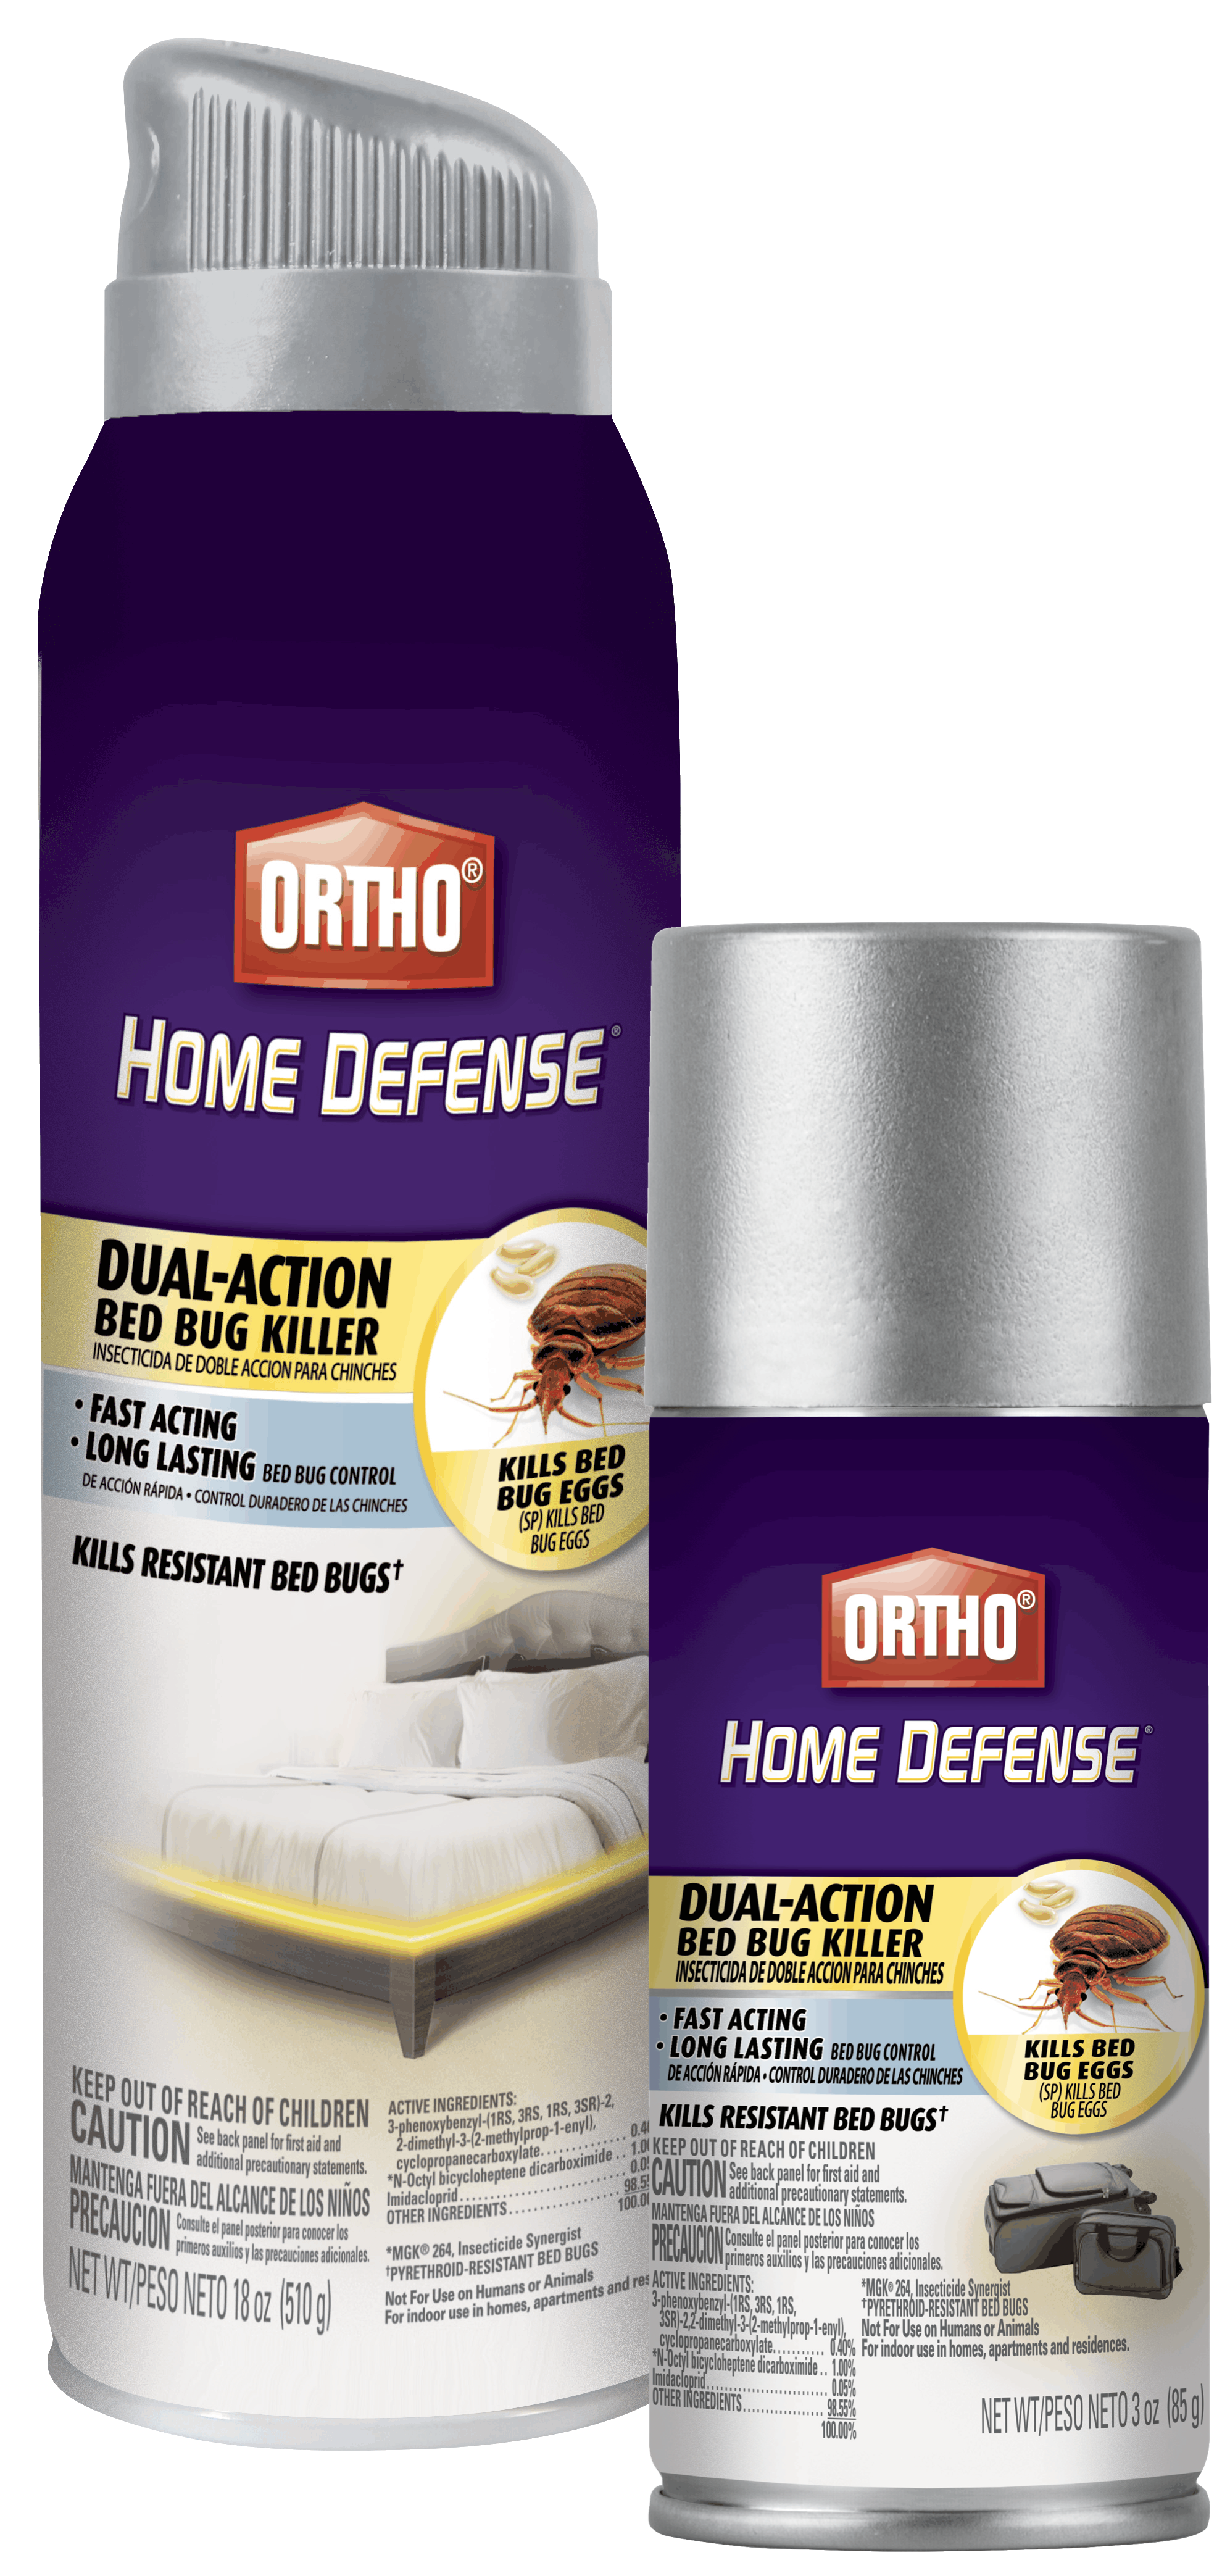 home defense items self protection weapons inspiring home interior ortho home defense dual action bed bug killer kills resistant bed home defense items home defense